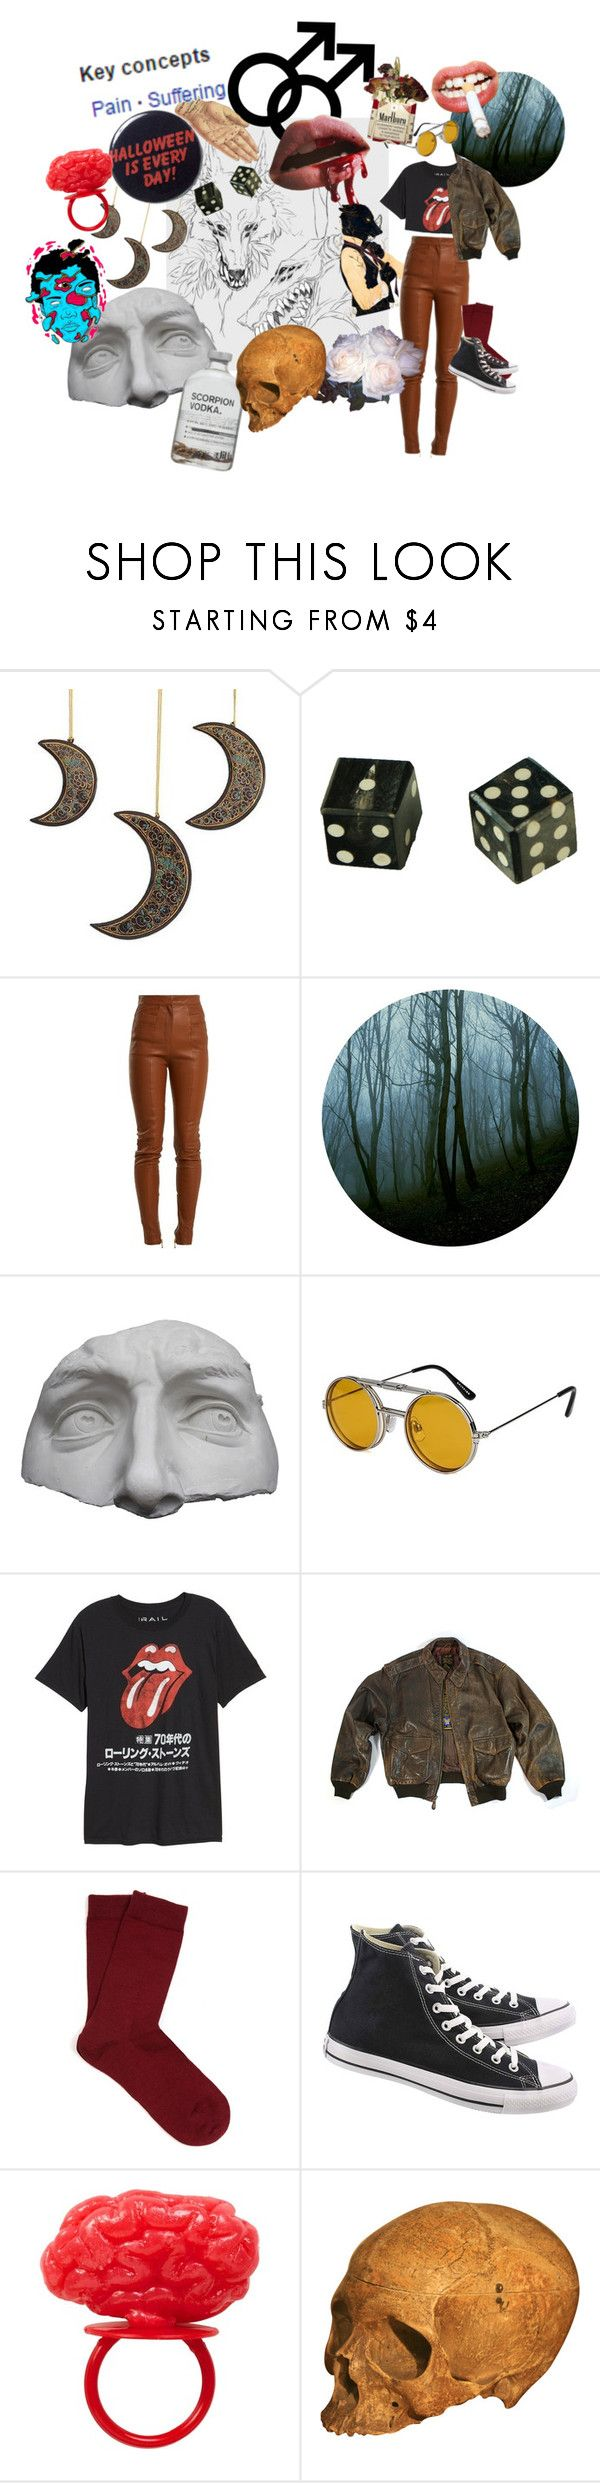 """the boy in love with monsters"" by the-boy-blunder on Polyvore featuring NOVICA, Ødd., Balmain, Romanelli, Spitfire, Public Opinion, Falke and Converse"